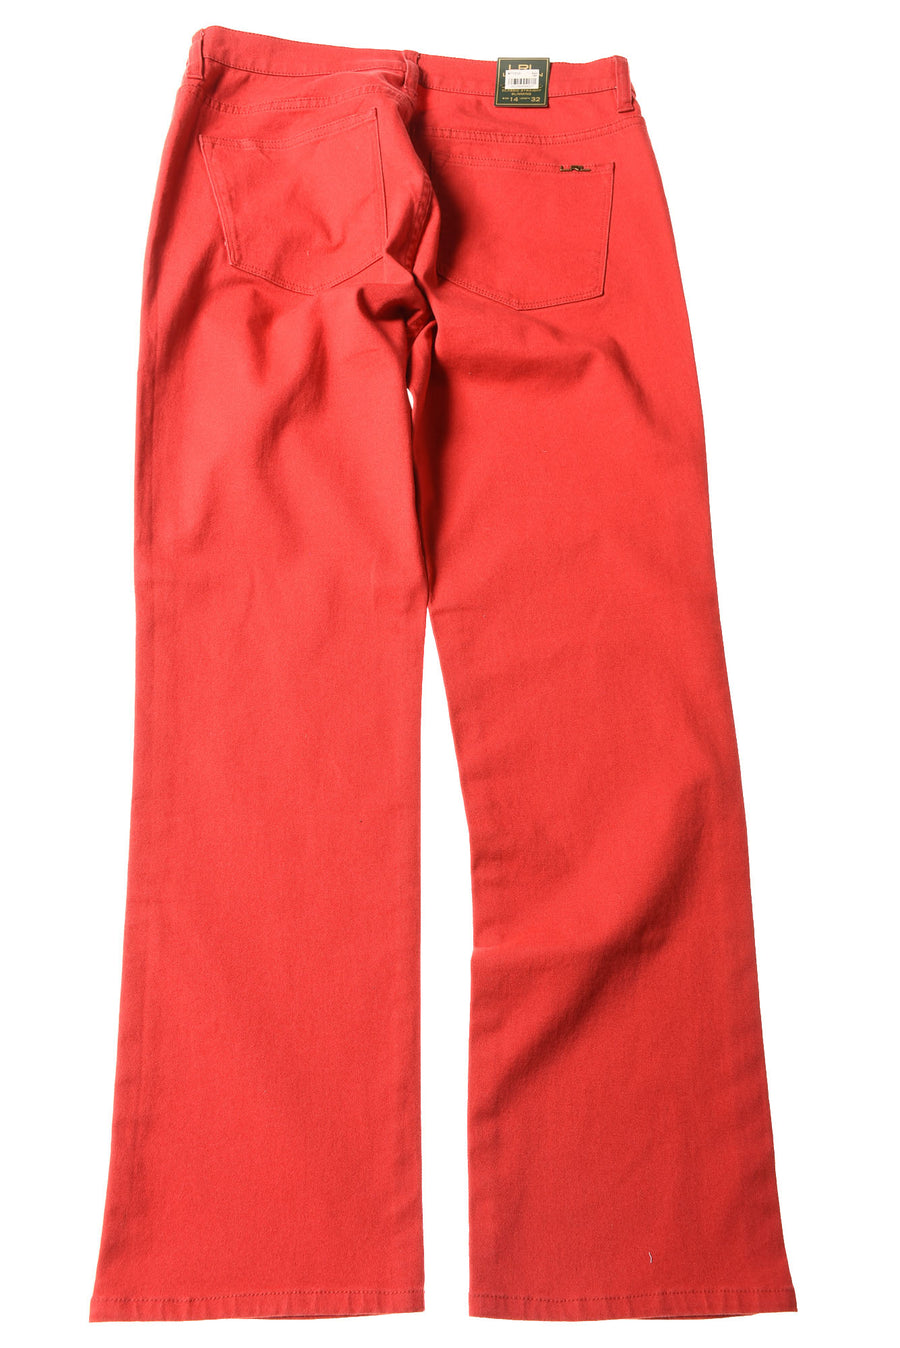 NEW Ralph Lauren Women's Jeans 14 Red